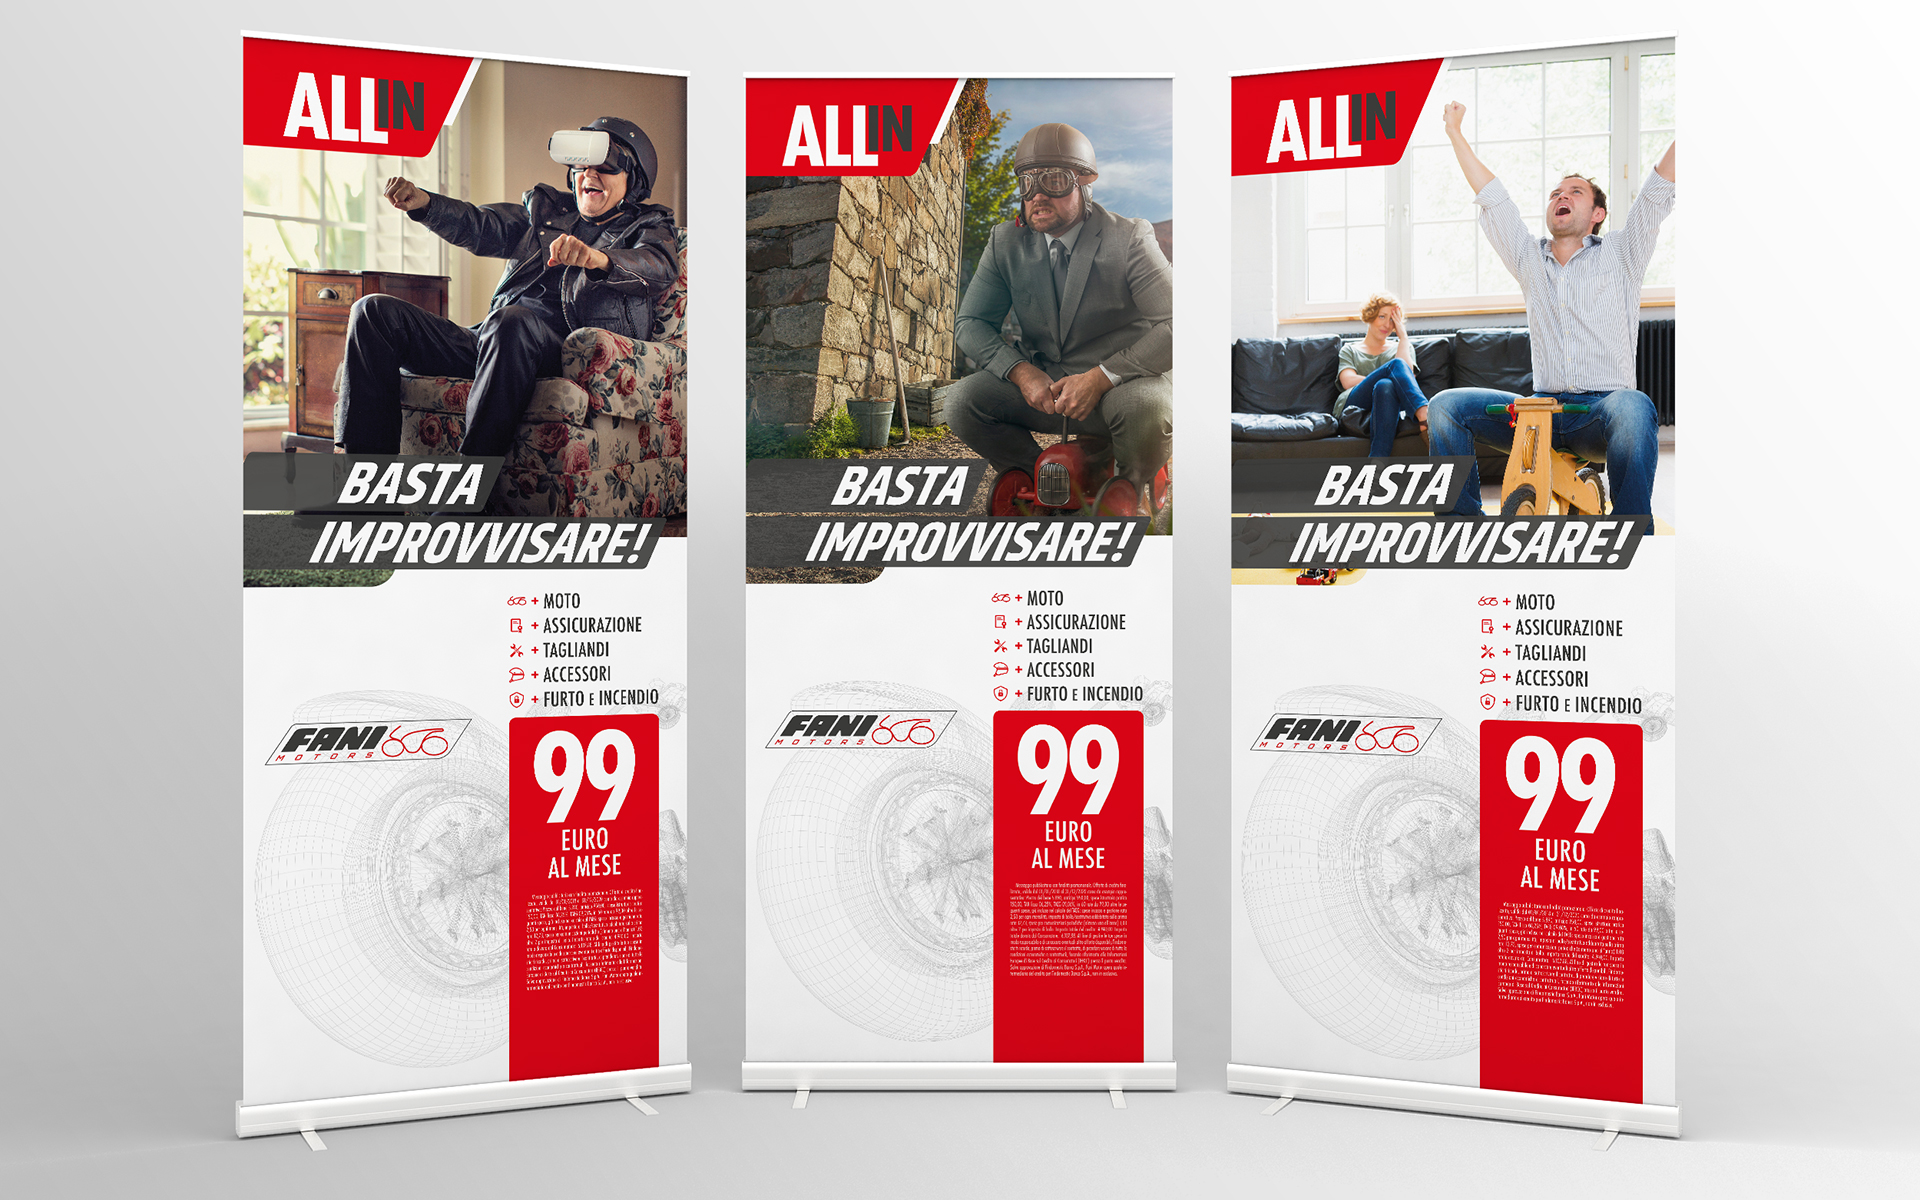 Campagna All-In